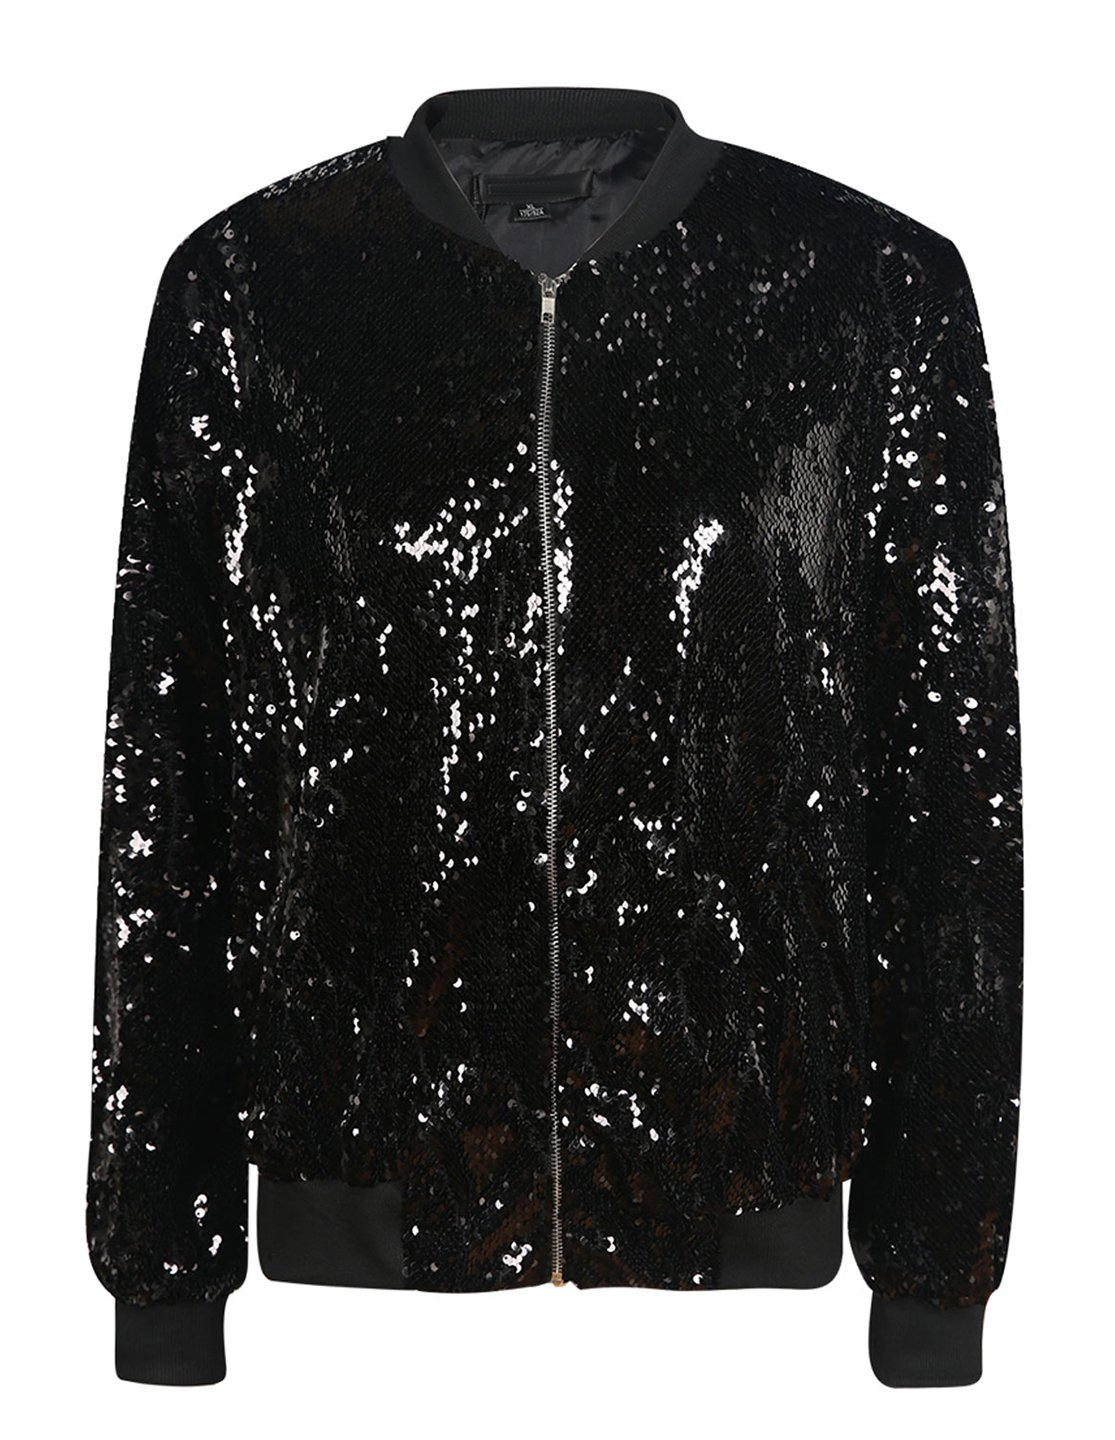 Richlulu Womens Sparkle Mermaid Sequin Threaded Sleeve Bomber Jacket (Medium, Black) by Richlulu